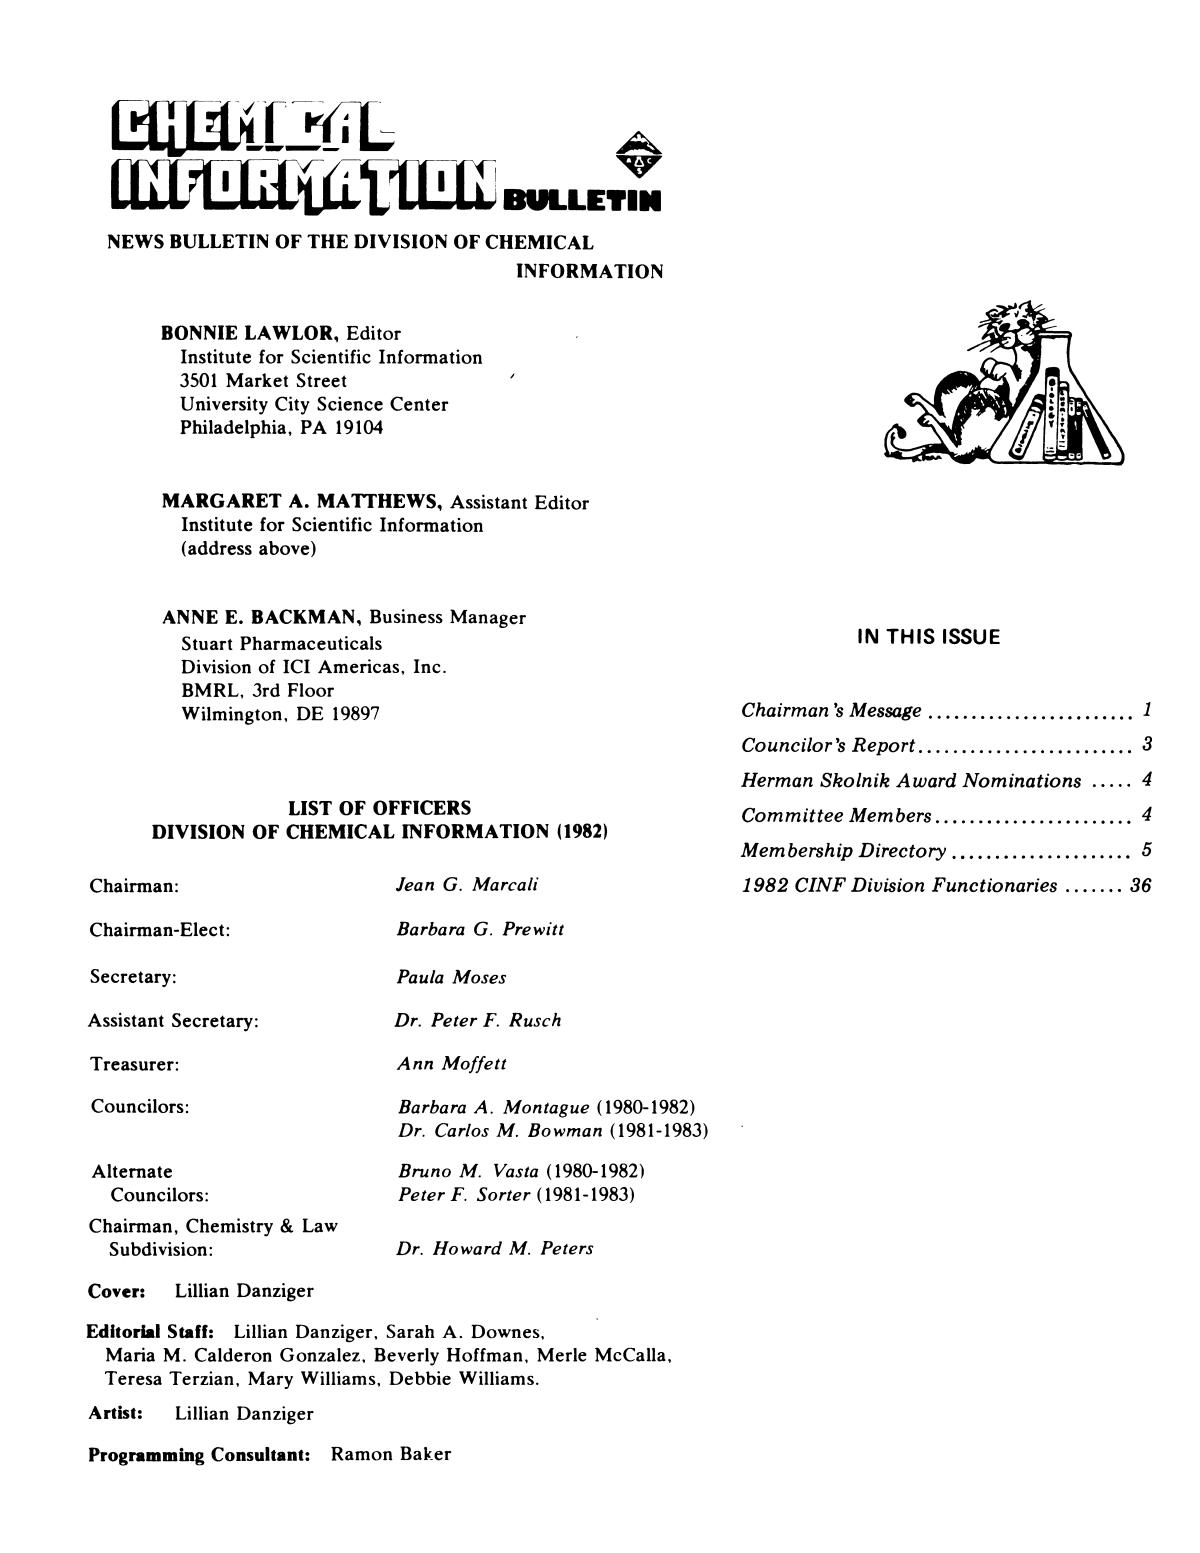 Chemical Information Bulletin, Volume 34, Number 3, Fall/Winter 1982                                                                                                      None